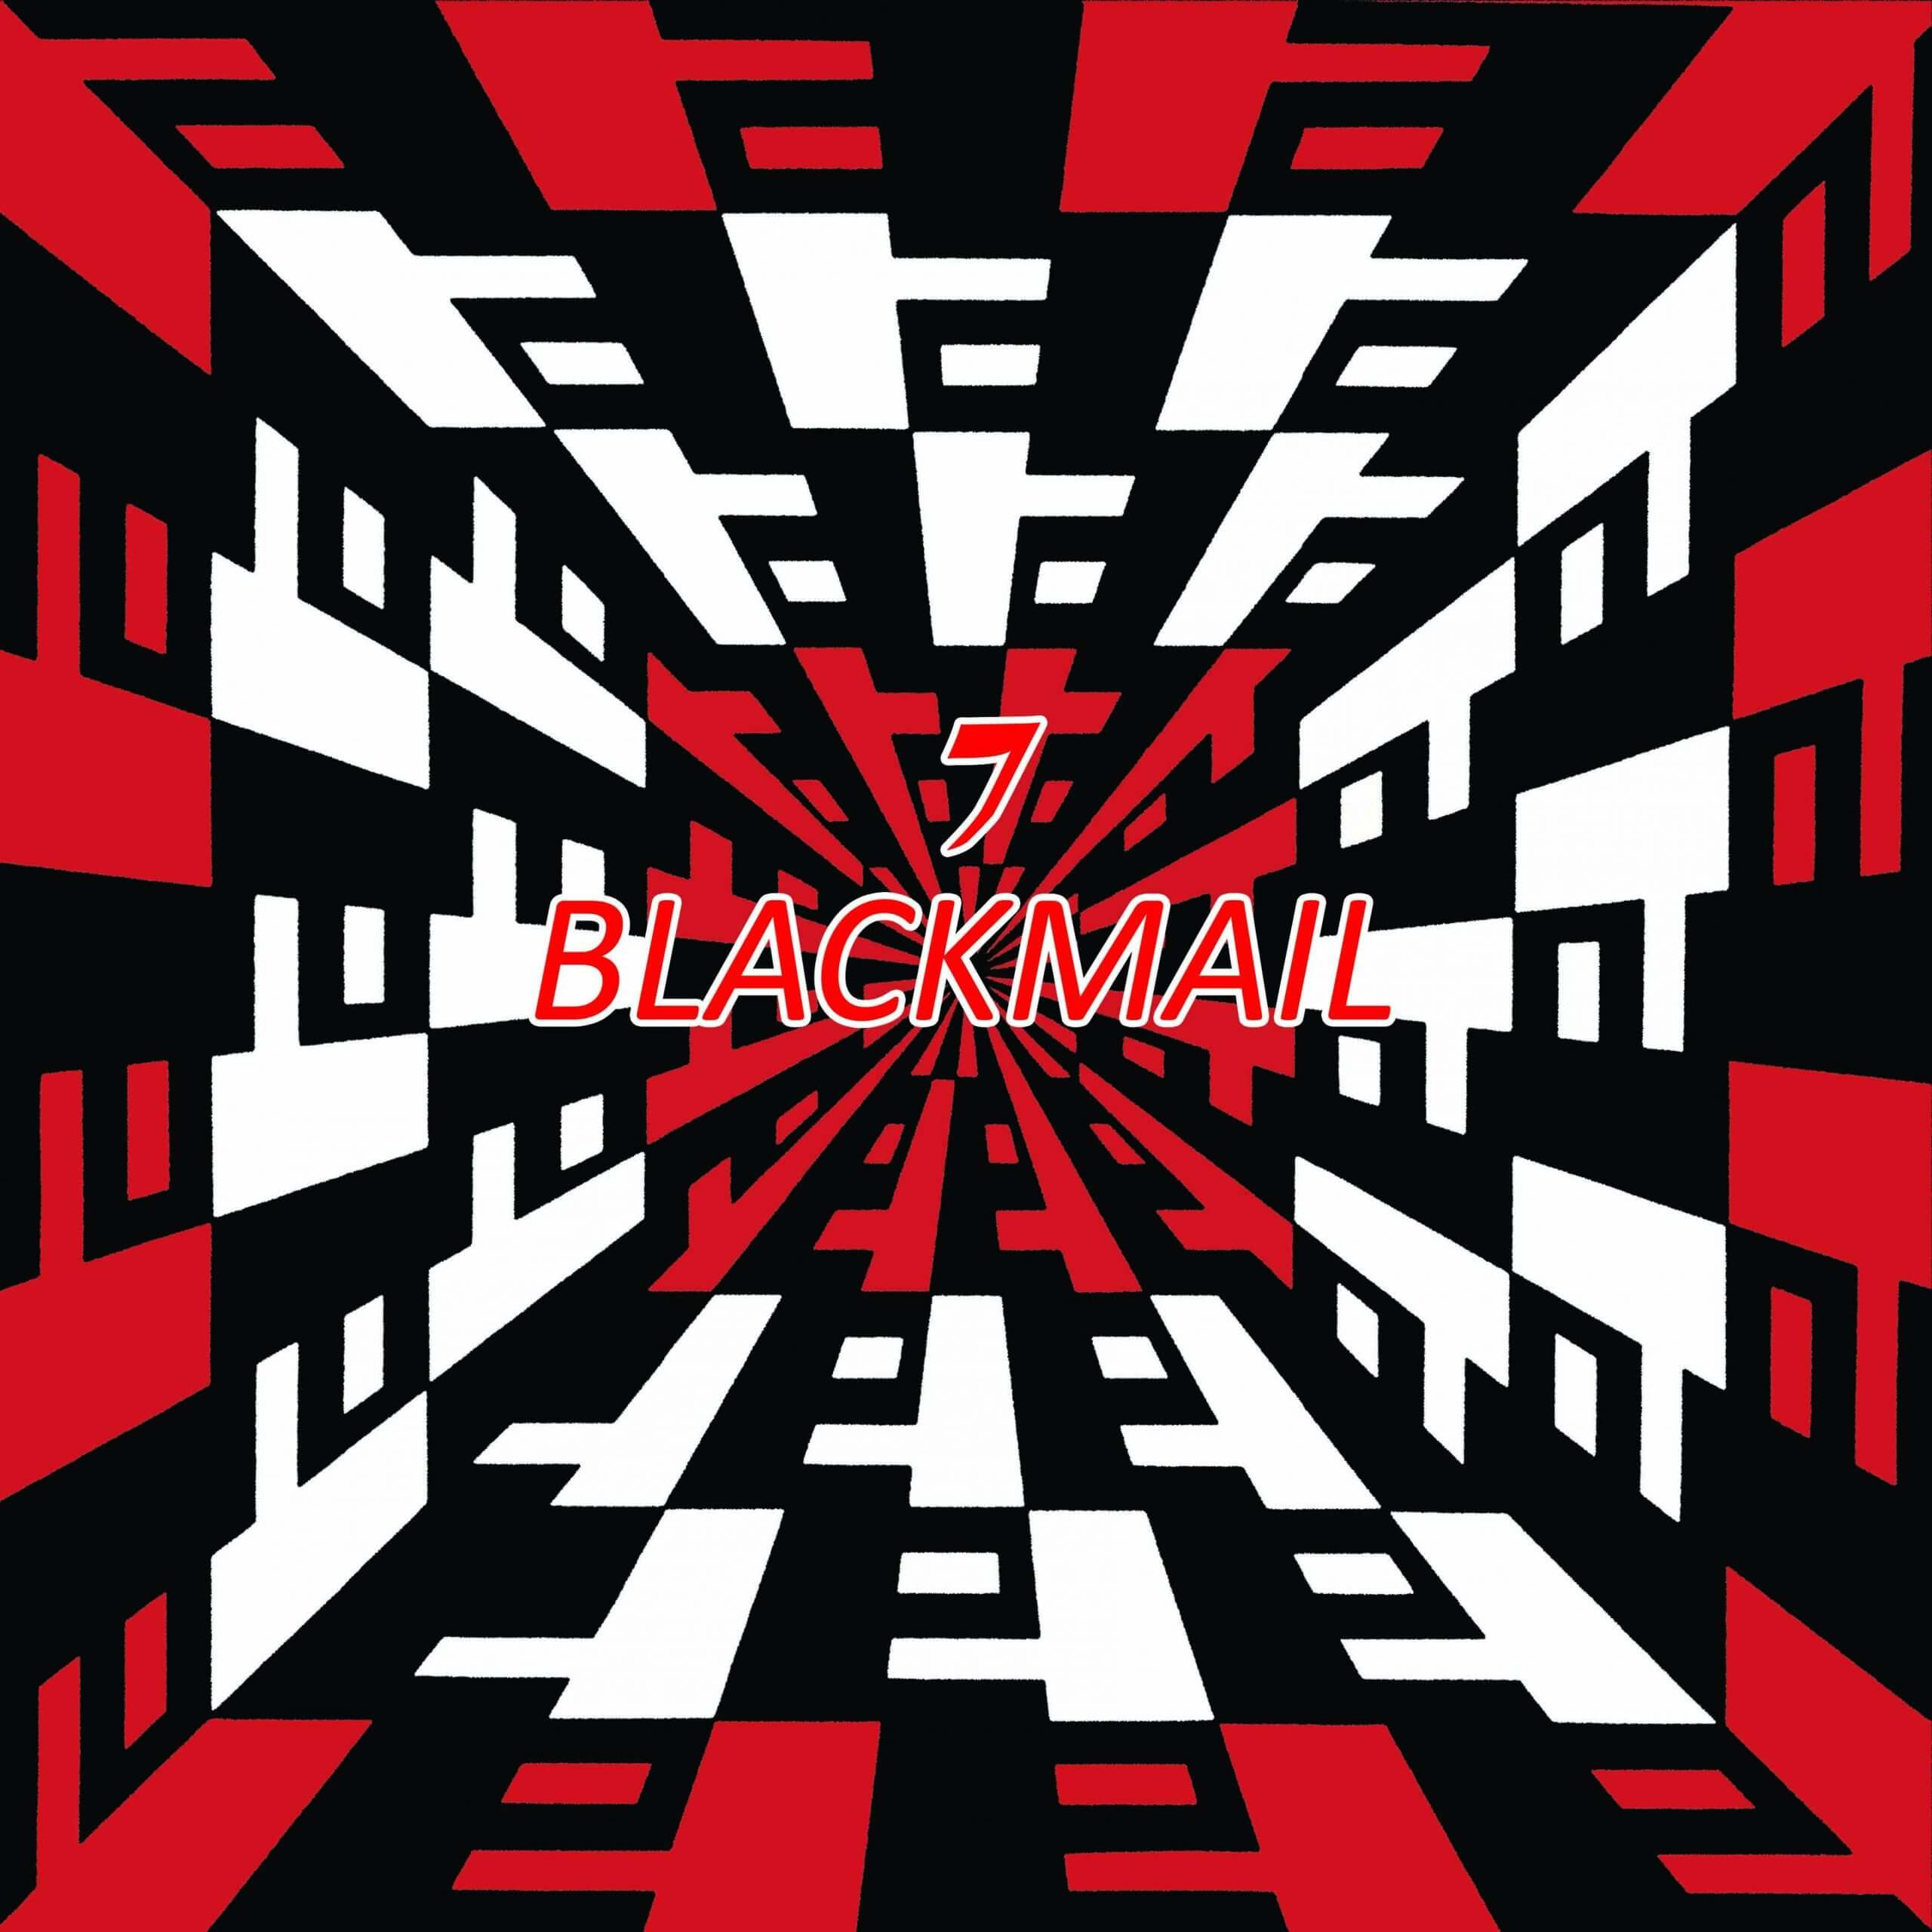 Blackmail Seven Labyrinth of Thoughts records